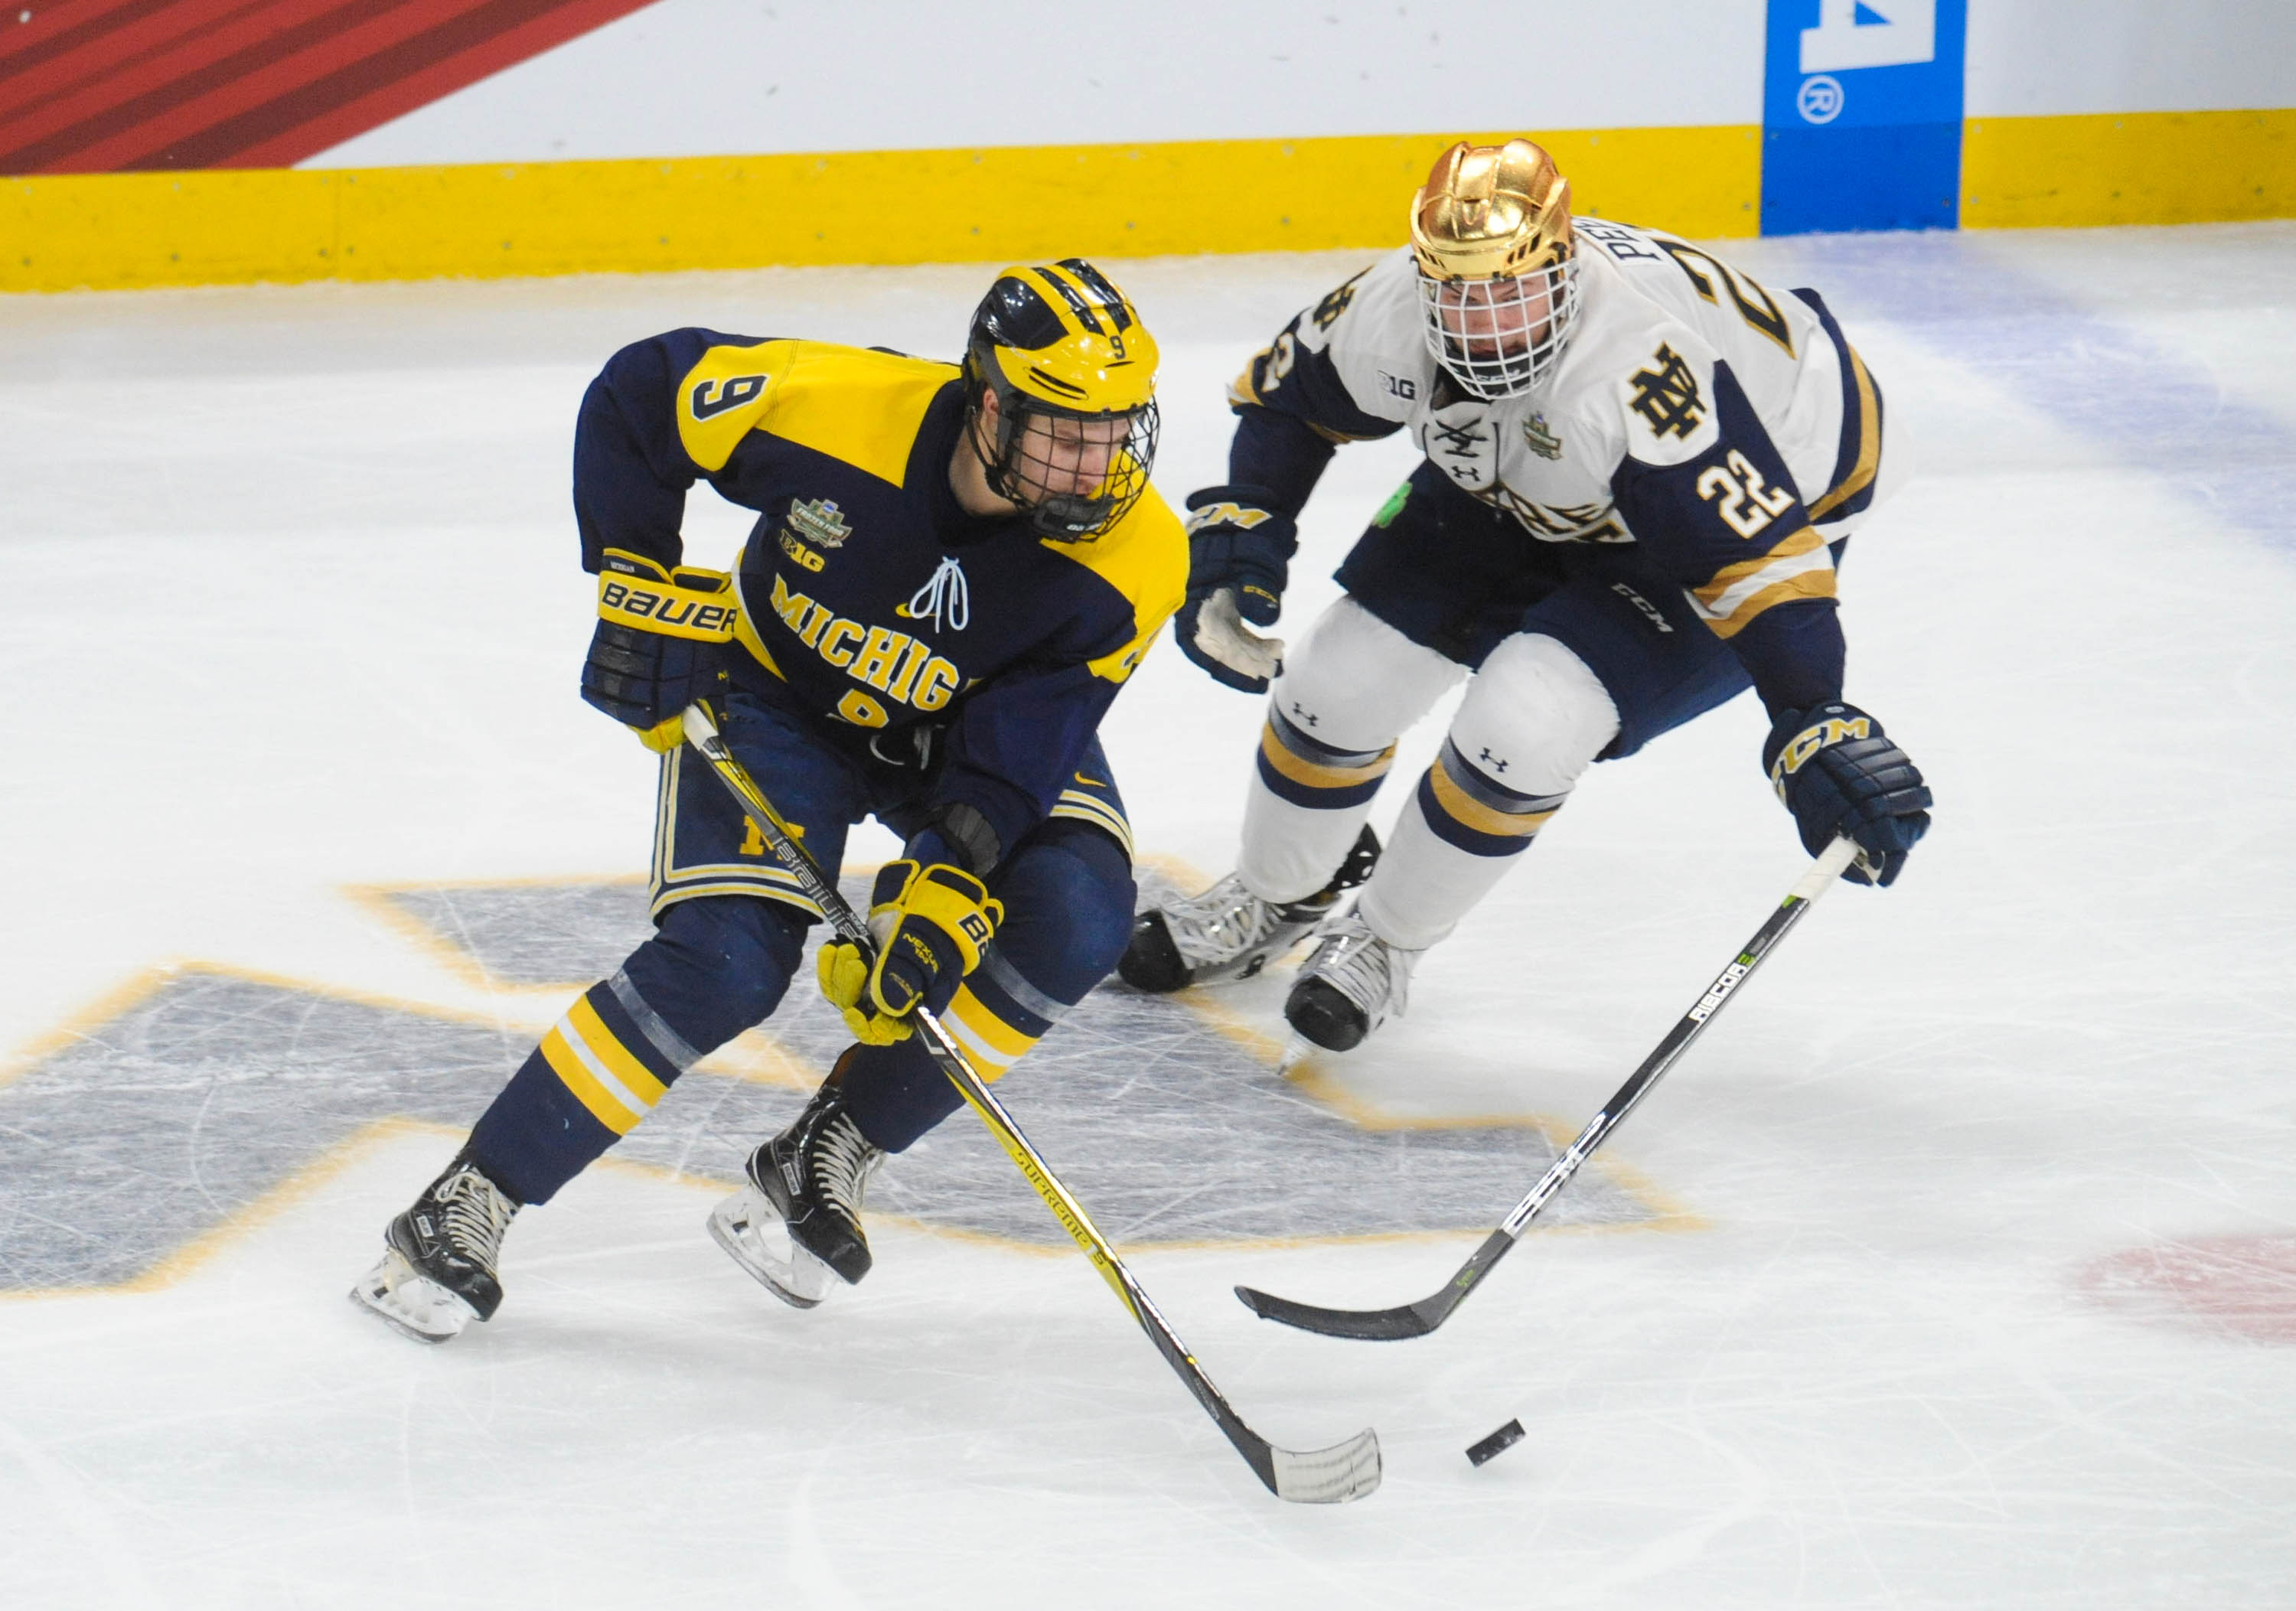 Apr 5, 2018; St. Paul, MN, USA; Michigan forwards Josh Norris (9) and Notre Dame defenseman Andrew Peeke (22) chase the puck at center ice during the second period in the 2018 Frozen Four college hockey national semifinals at Xcel Energy Center